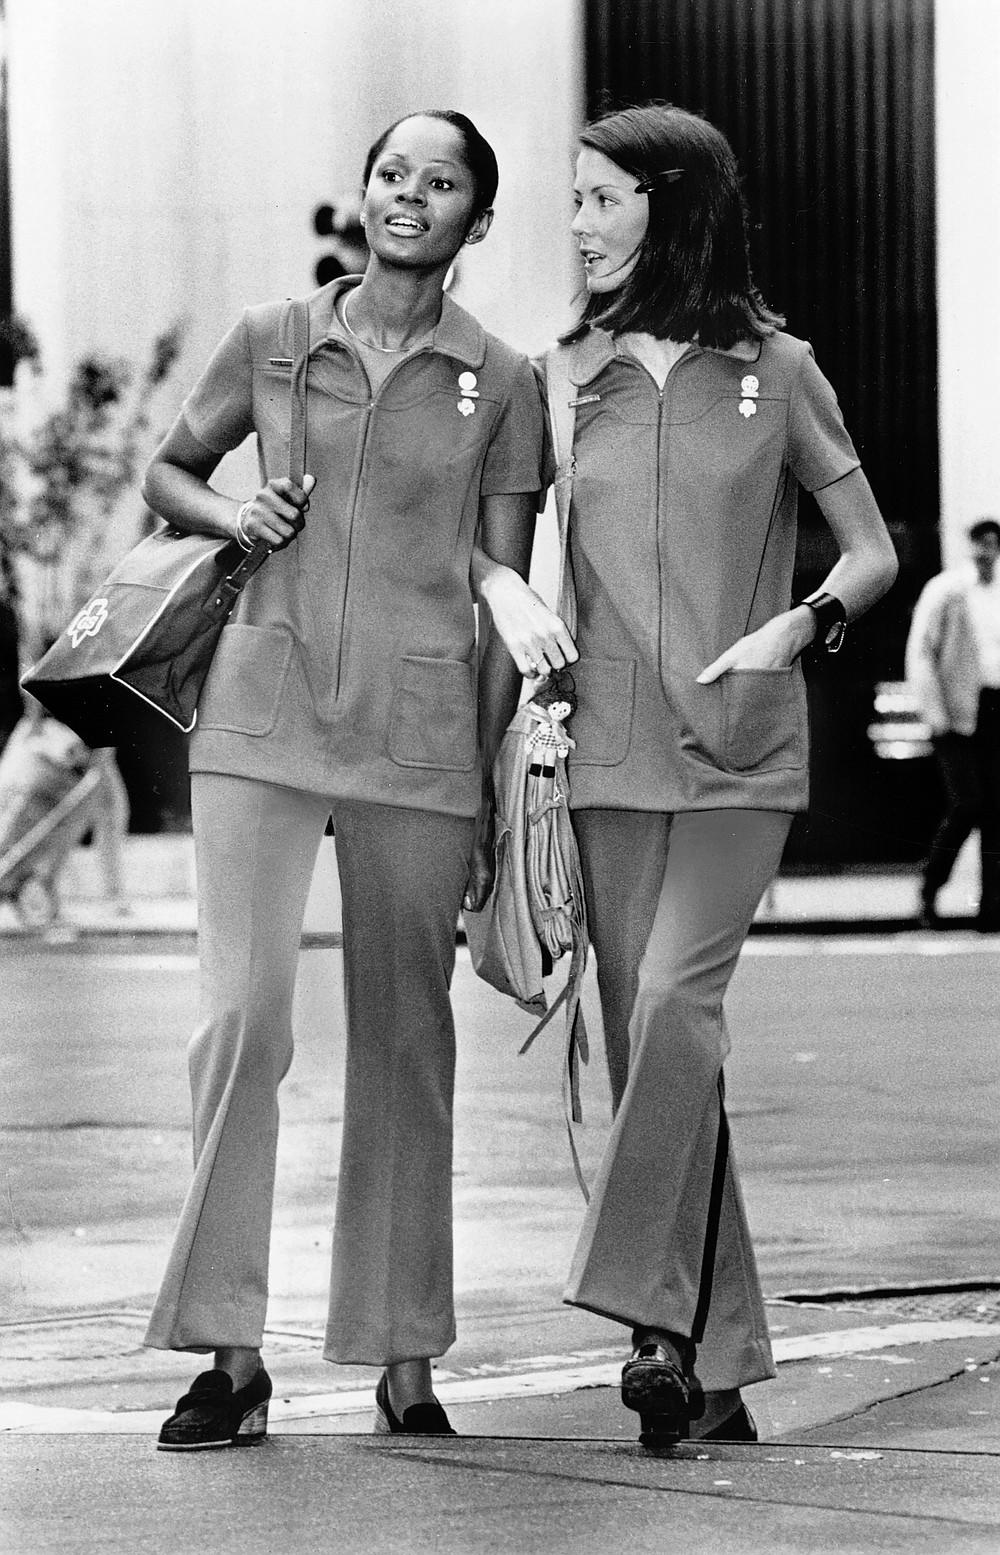 In an undated image provided via GSUSA, the Stella Sloat uniform of the '70s had a zip-front tunic and elastic-waist slacks. For the first time in decades, the Girl Scouts are getting new clothes. (via GSUSA of the USA via The New York Times) -- NO SALES; FOR EDITORIAL USE ONLY WITH NYT STORY GIRL SCOUTS UNIFORM BY JESSICA TESTA FOR AUG. 25, 2020. ALL OTHER USE PROHIBITED. --